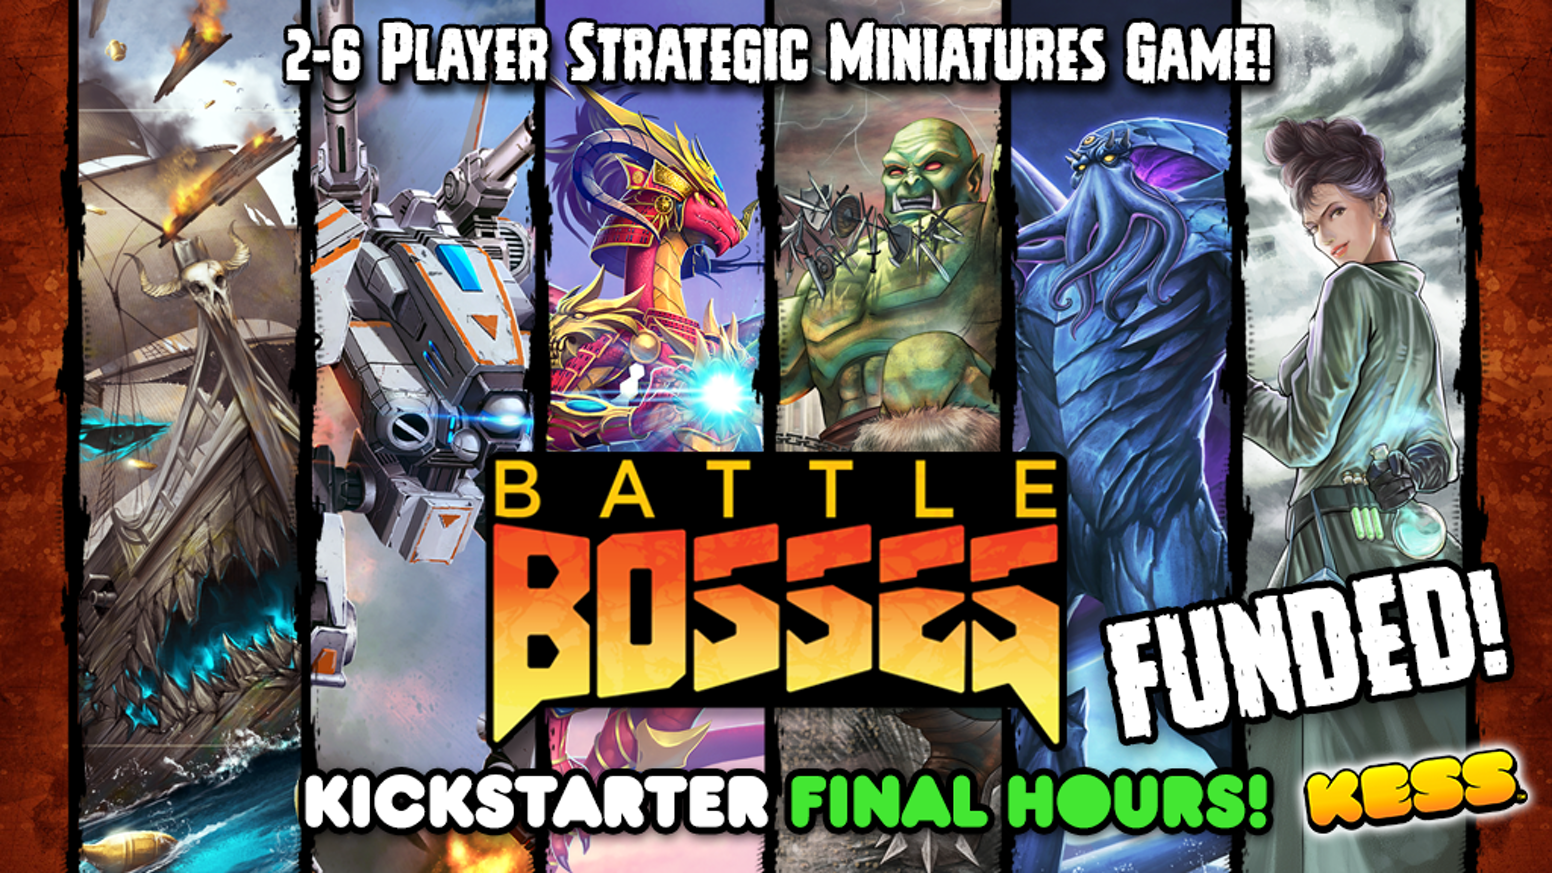 Battle Bosses is a multiplayer miniature Battle Arena game for 2-6 players where each player controls an epic Boss and their minions.